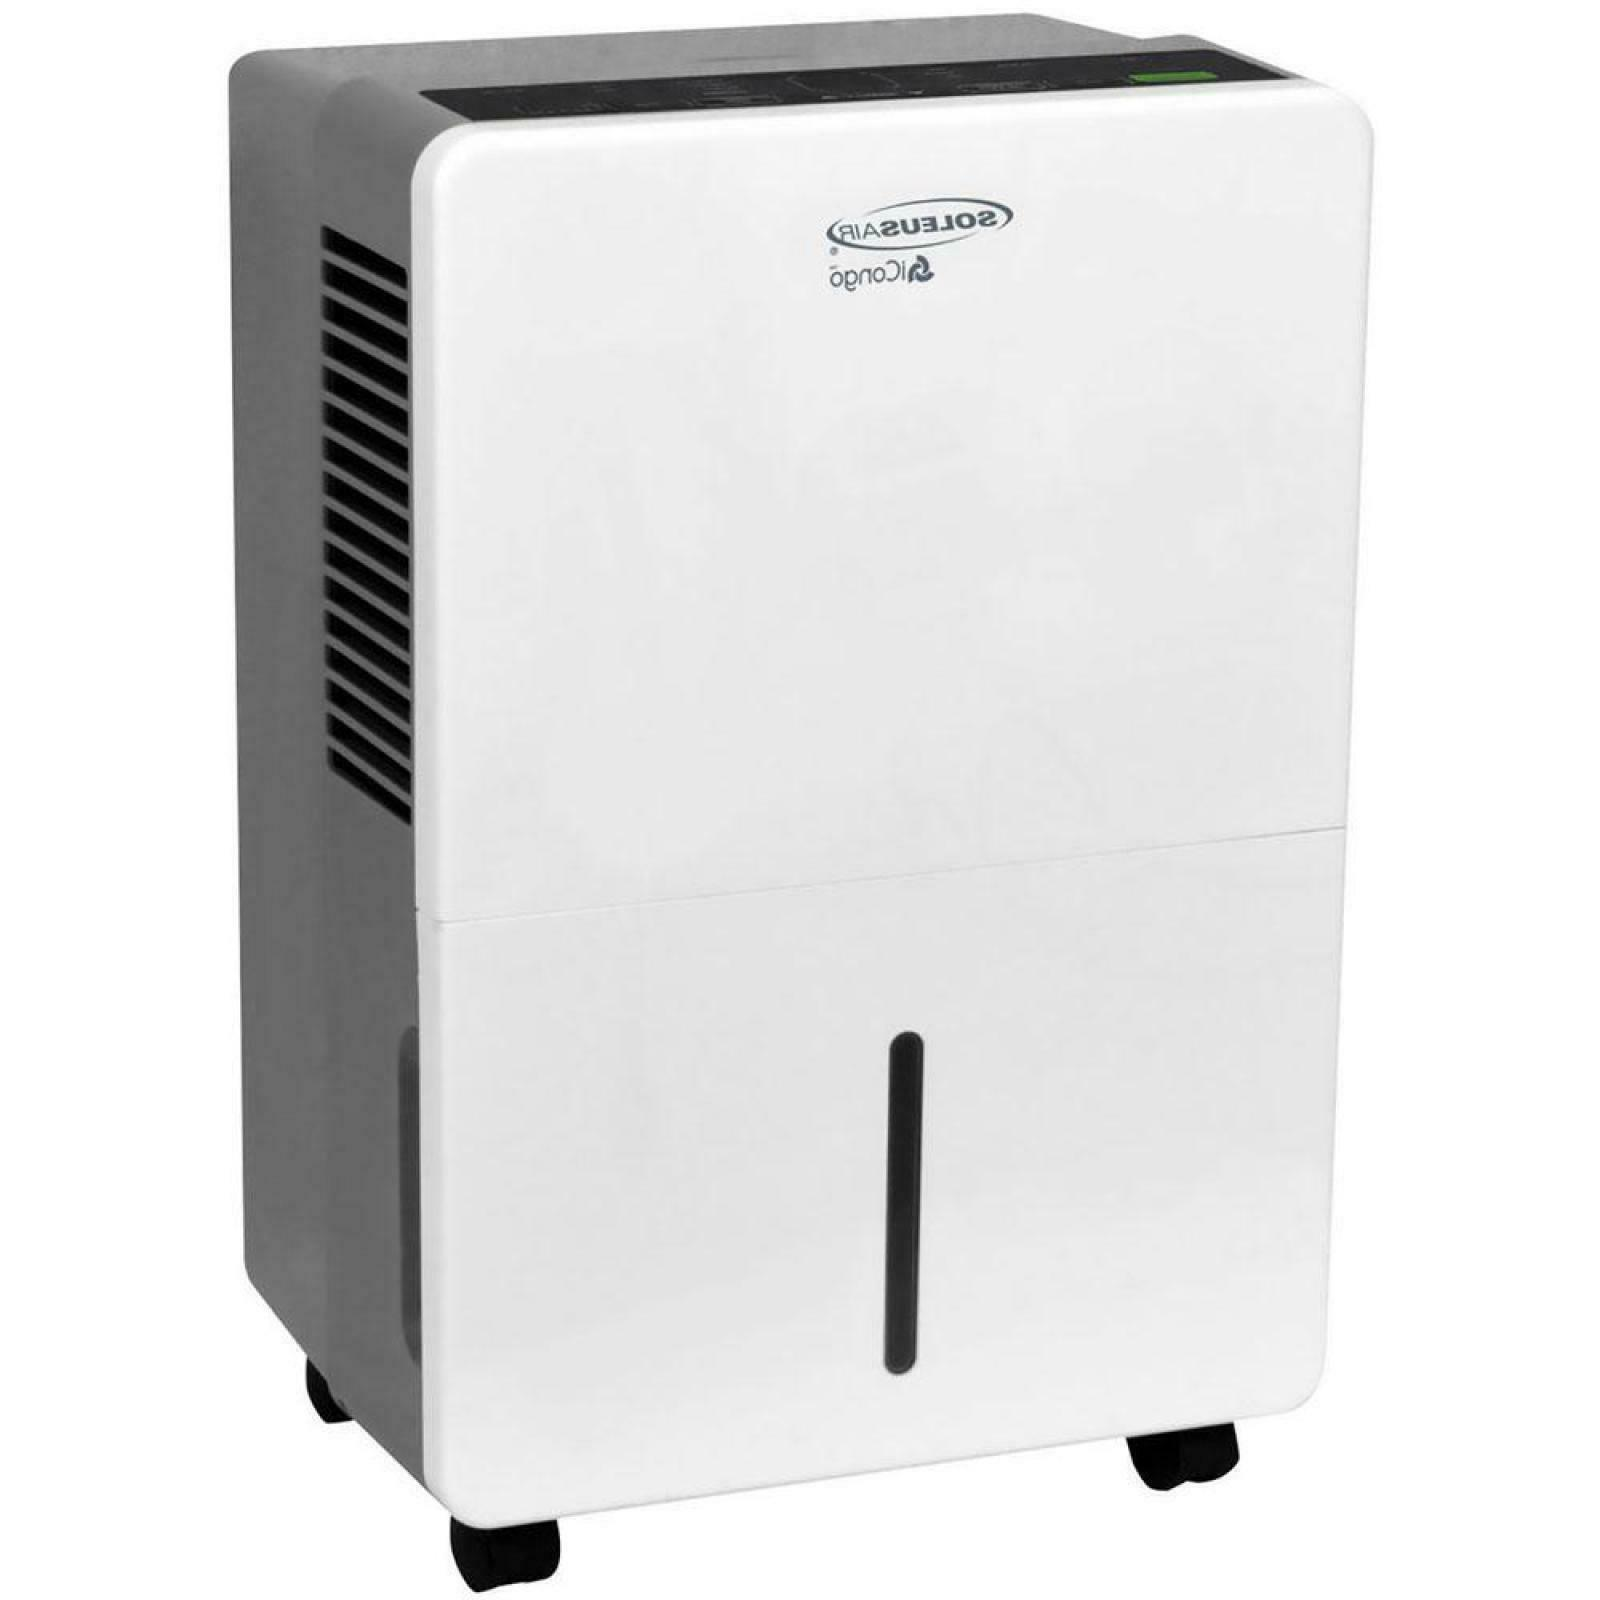 70 pint portable dehumidifier powerful and reliable